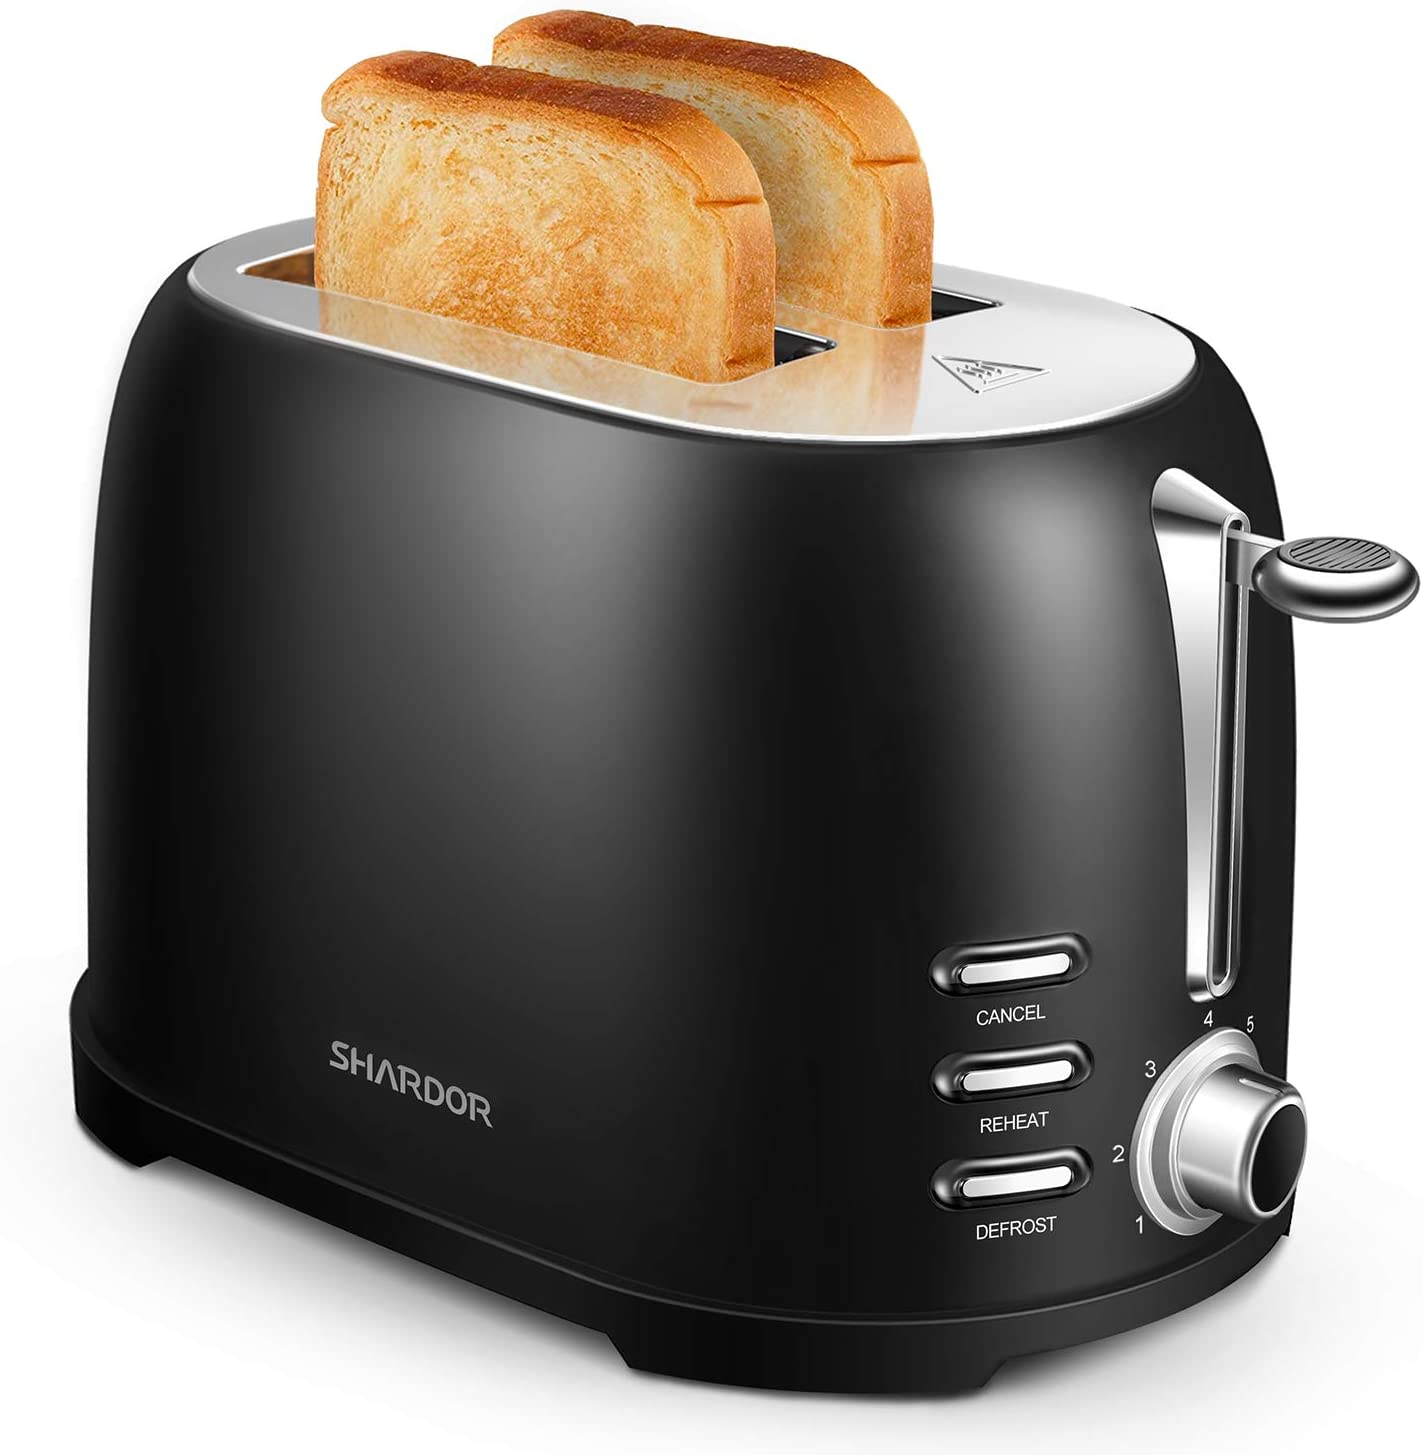 SHARDOR Toaster 2 Slice, Extra-Wide Toaster, Stainless Steel Toaster, Evenly Toast, Black